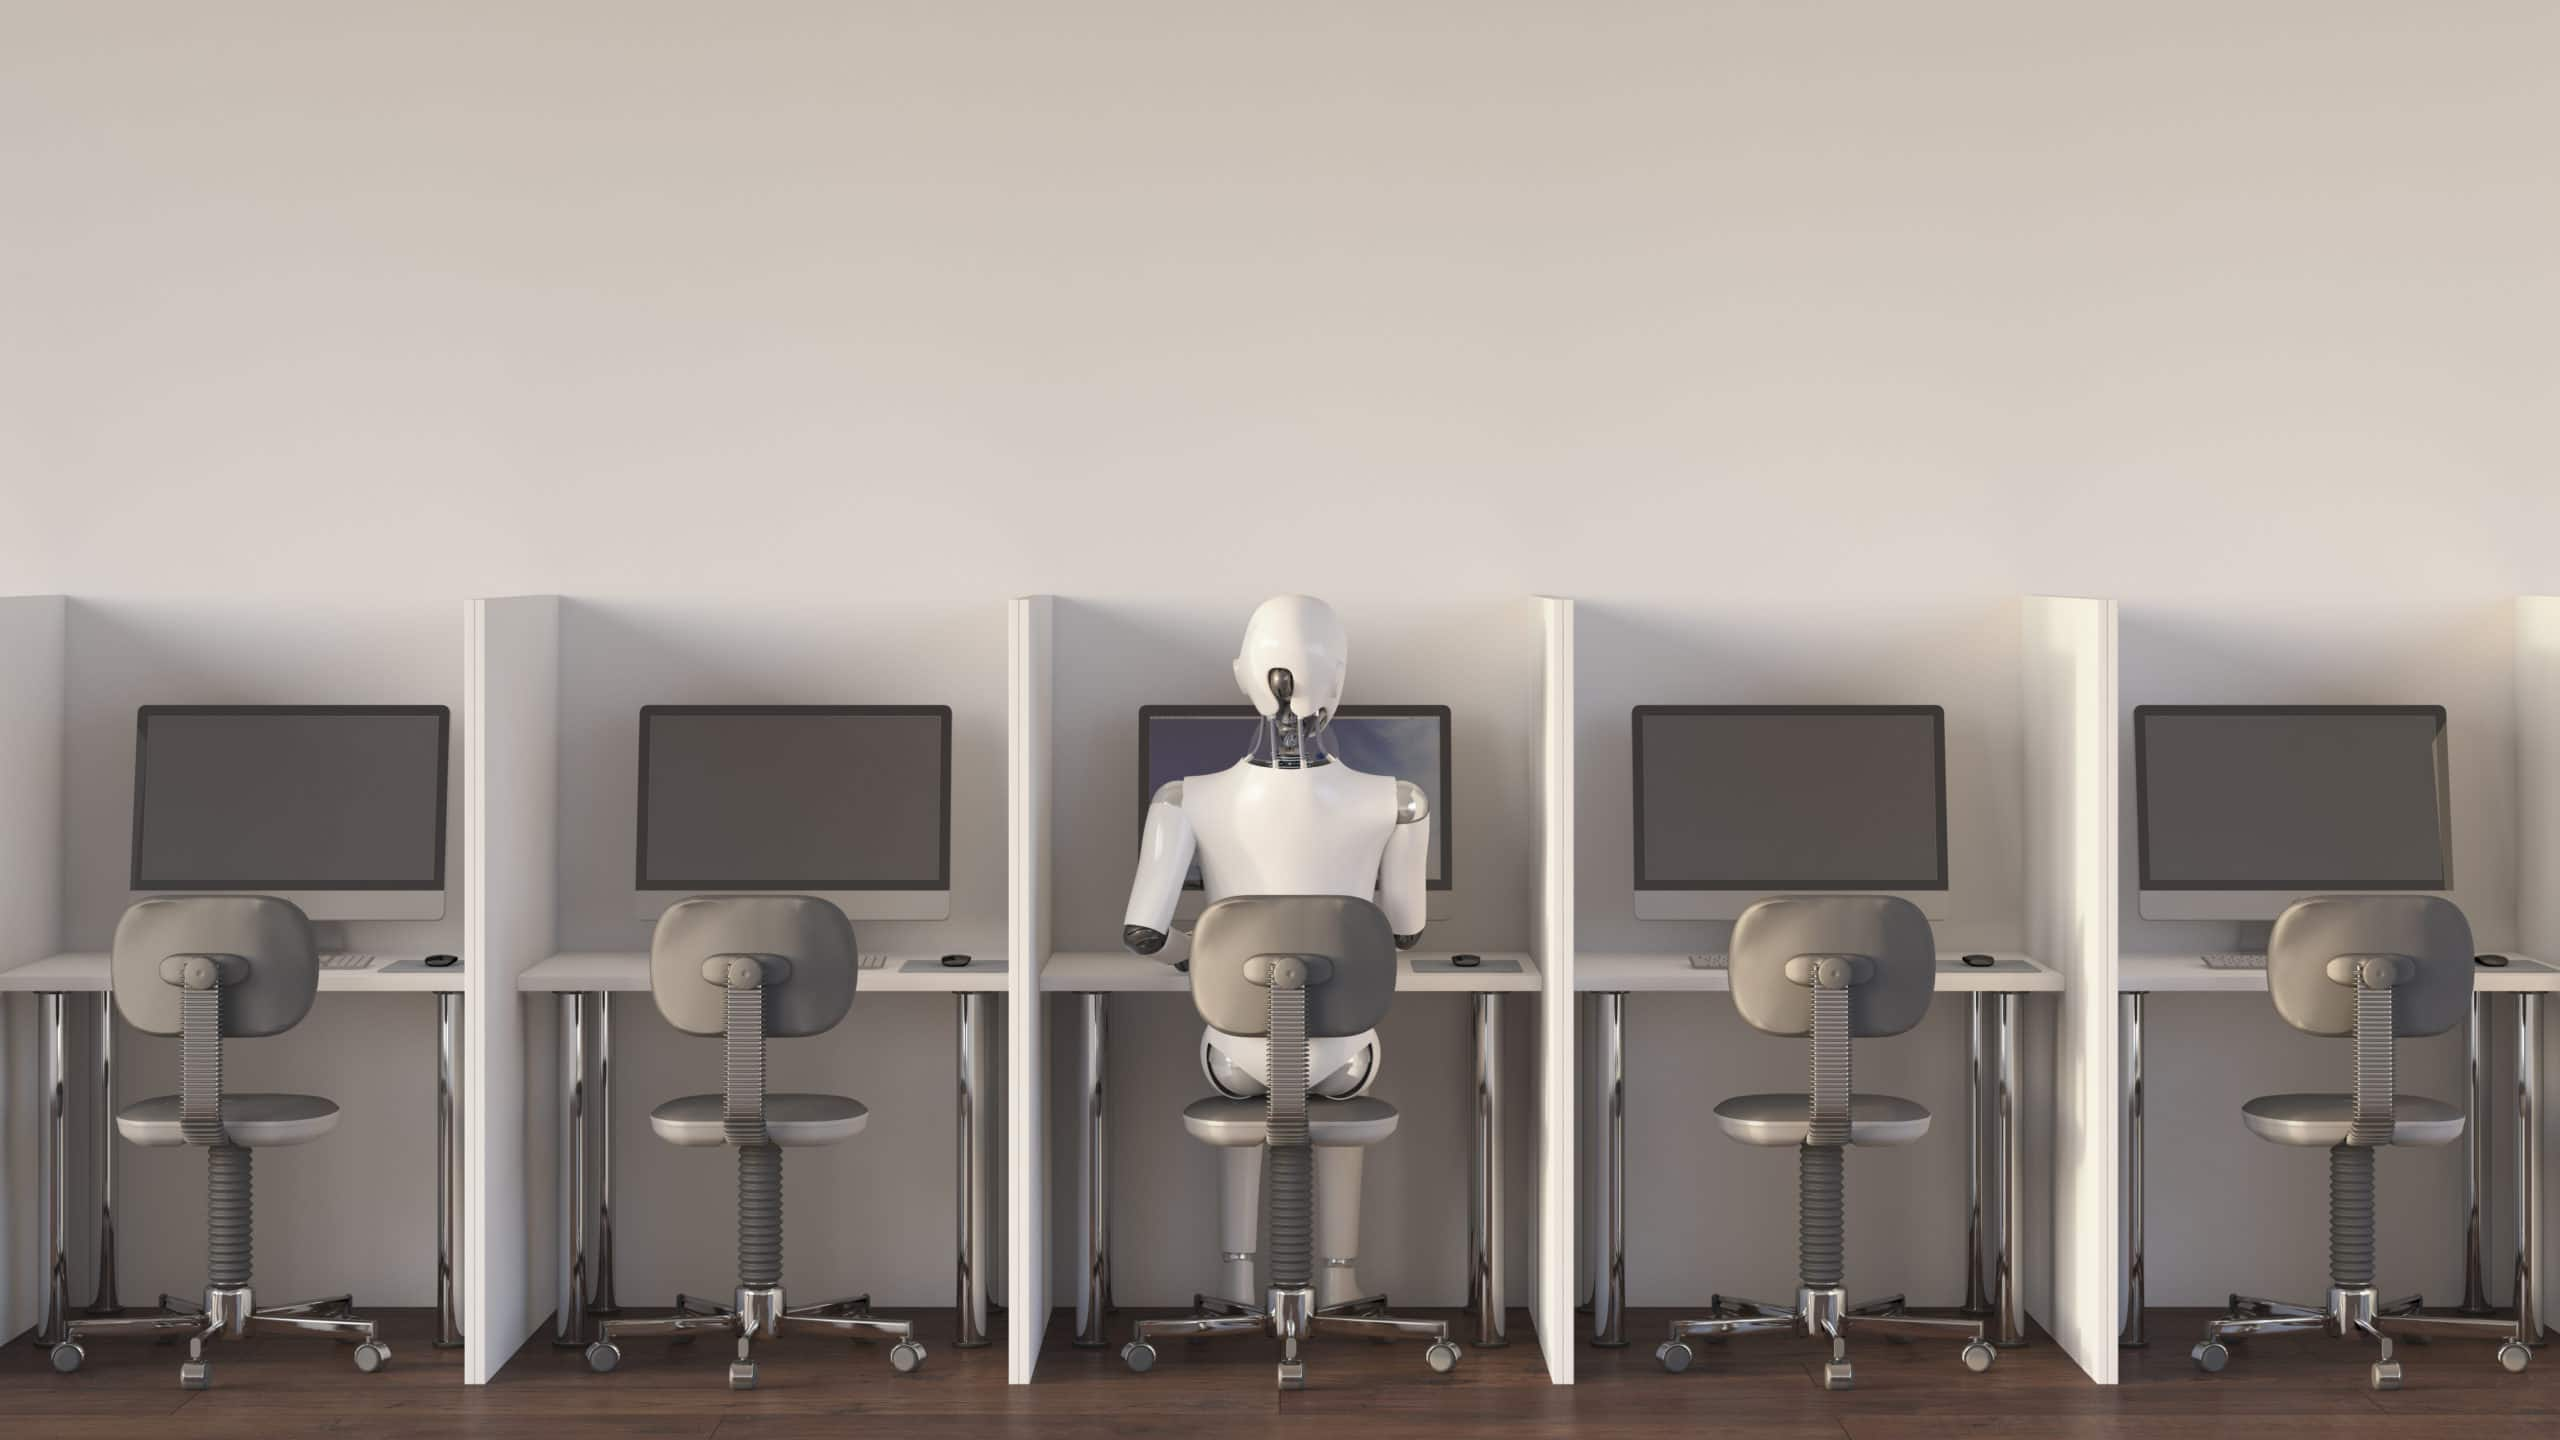 Robot sitting in office, working alone